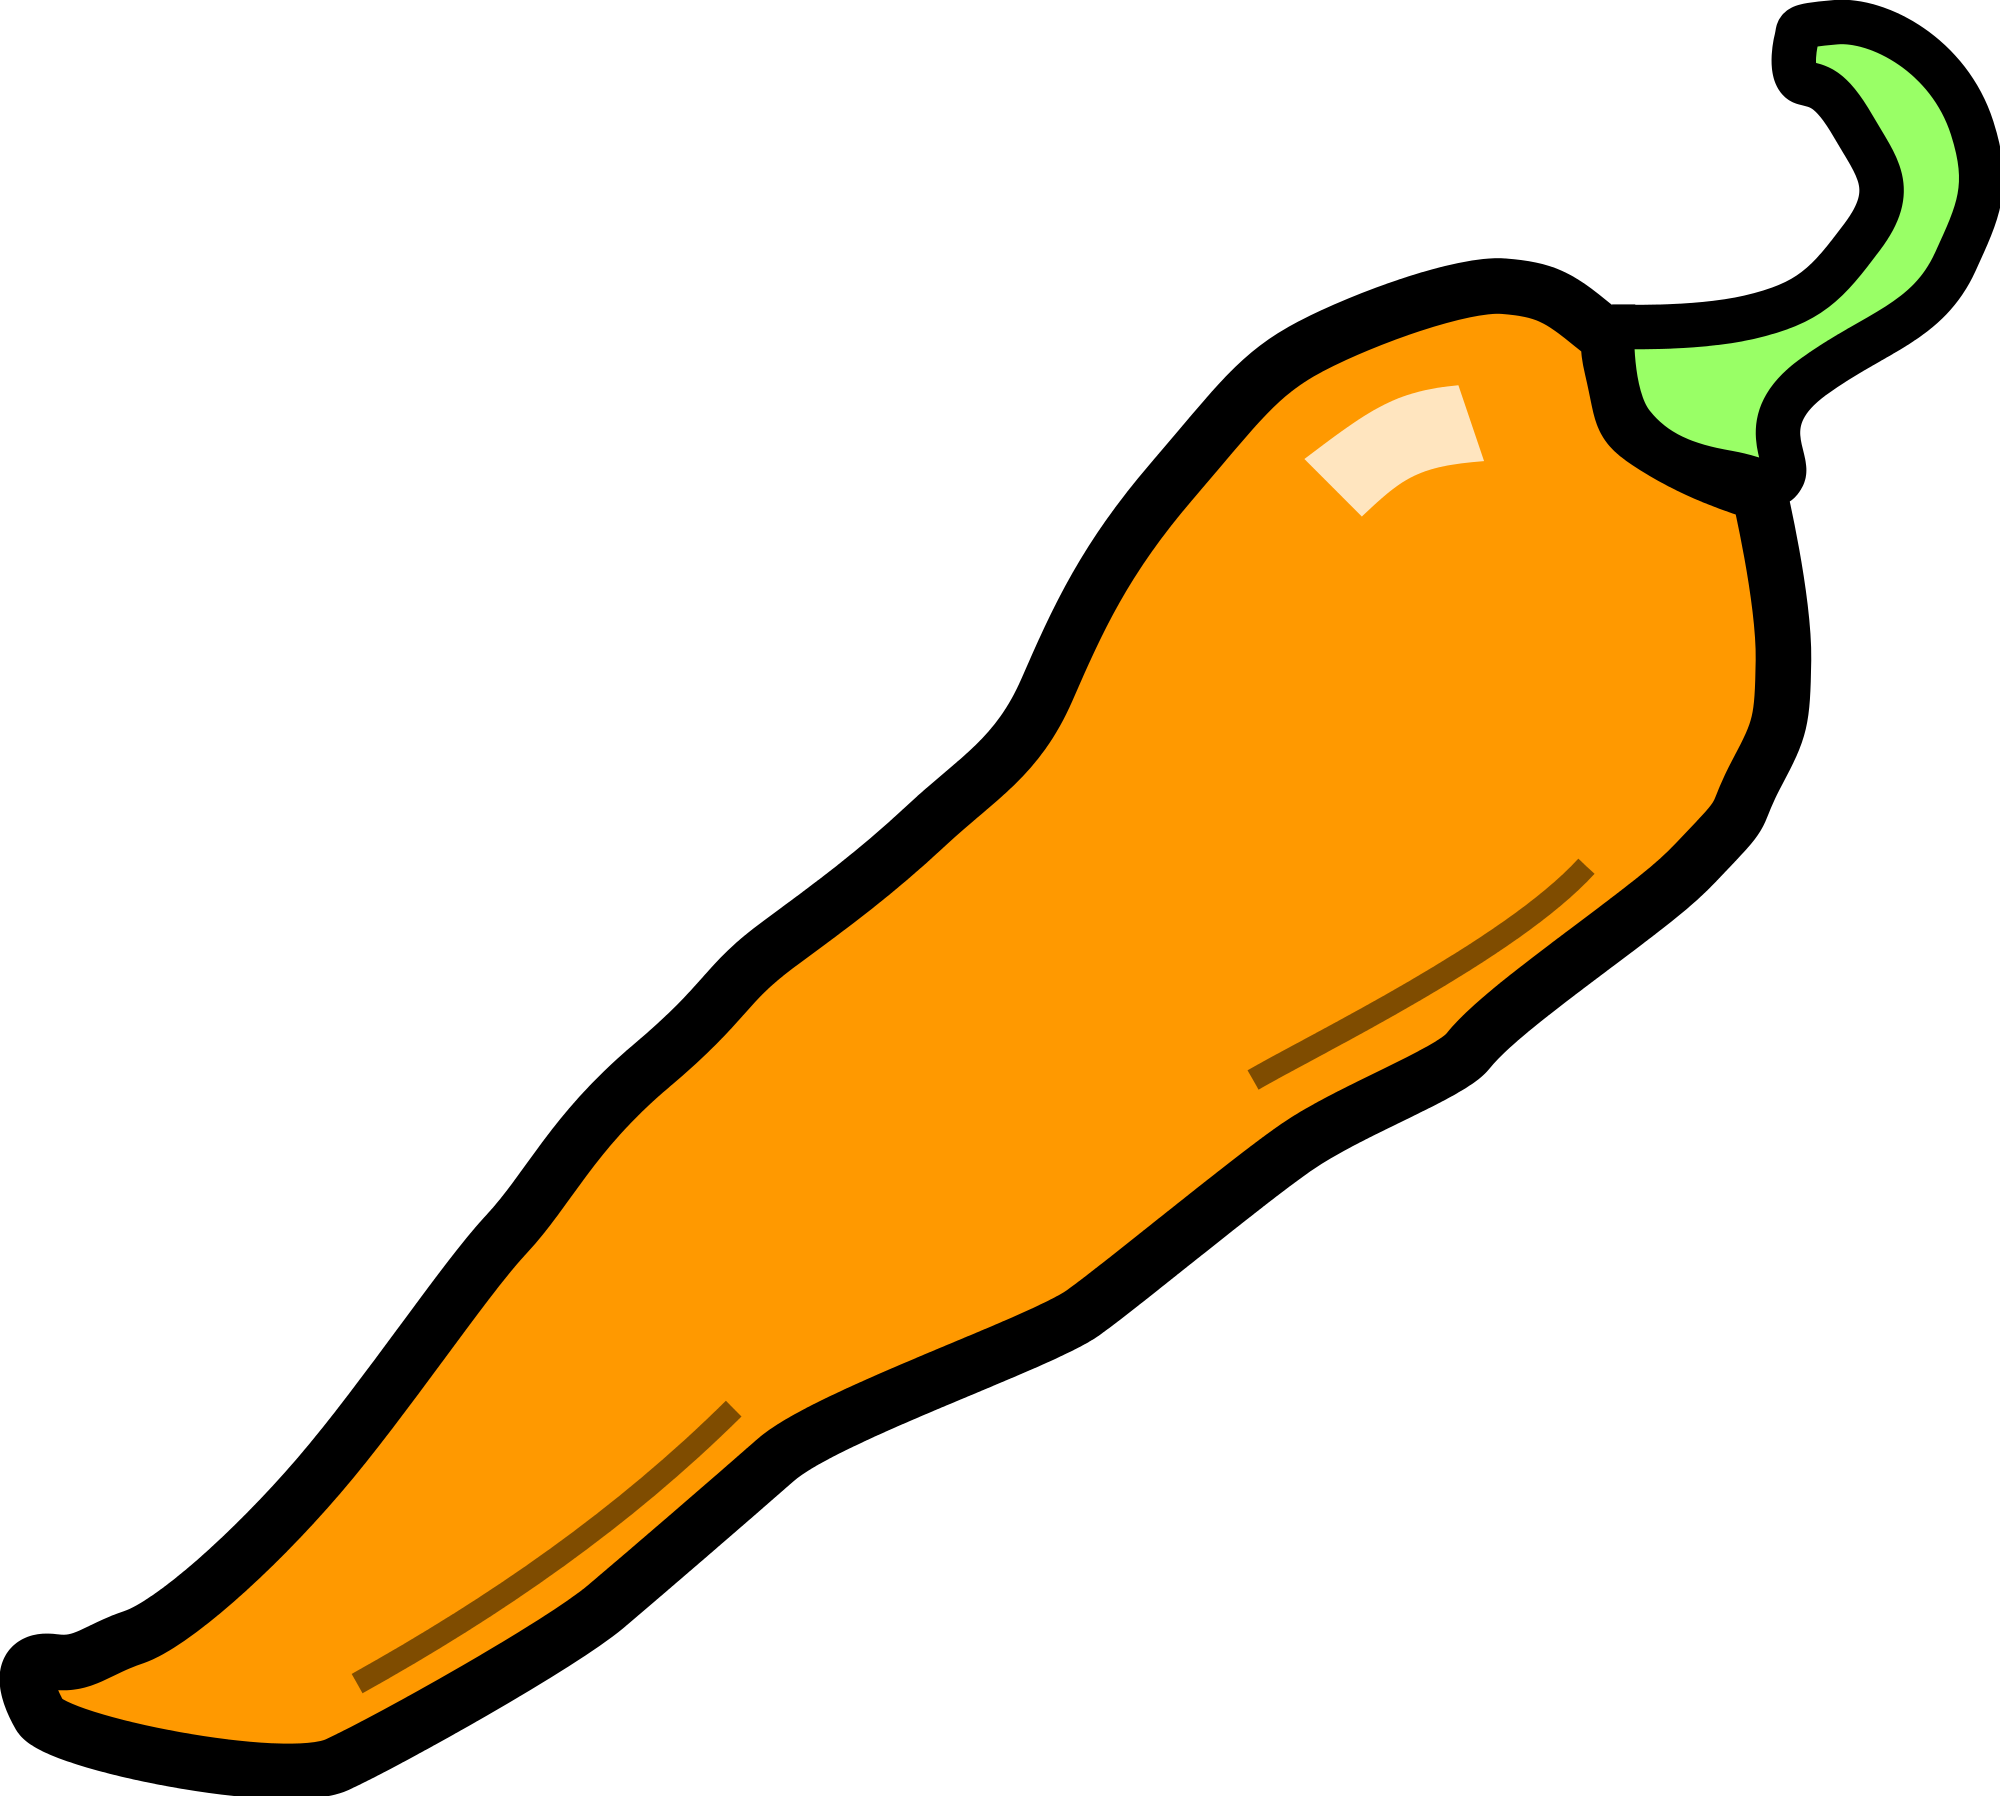 collection of orange. Peppers clipart cute